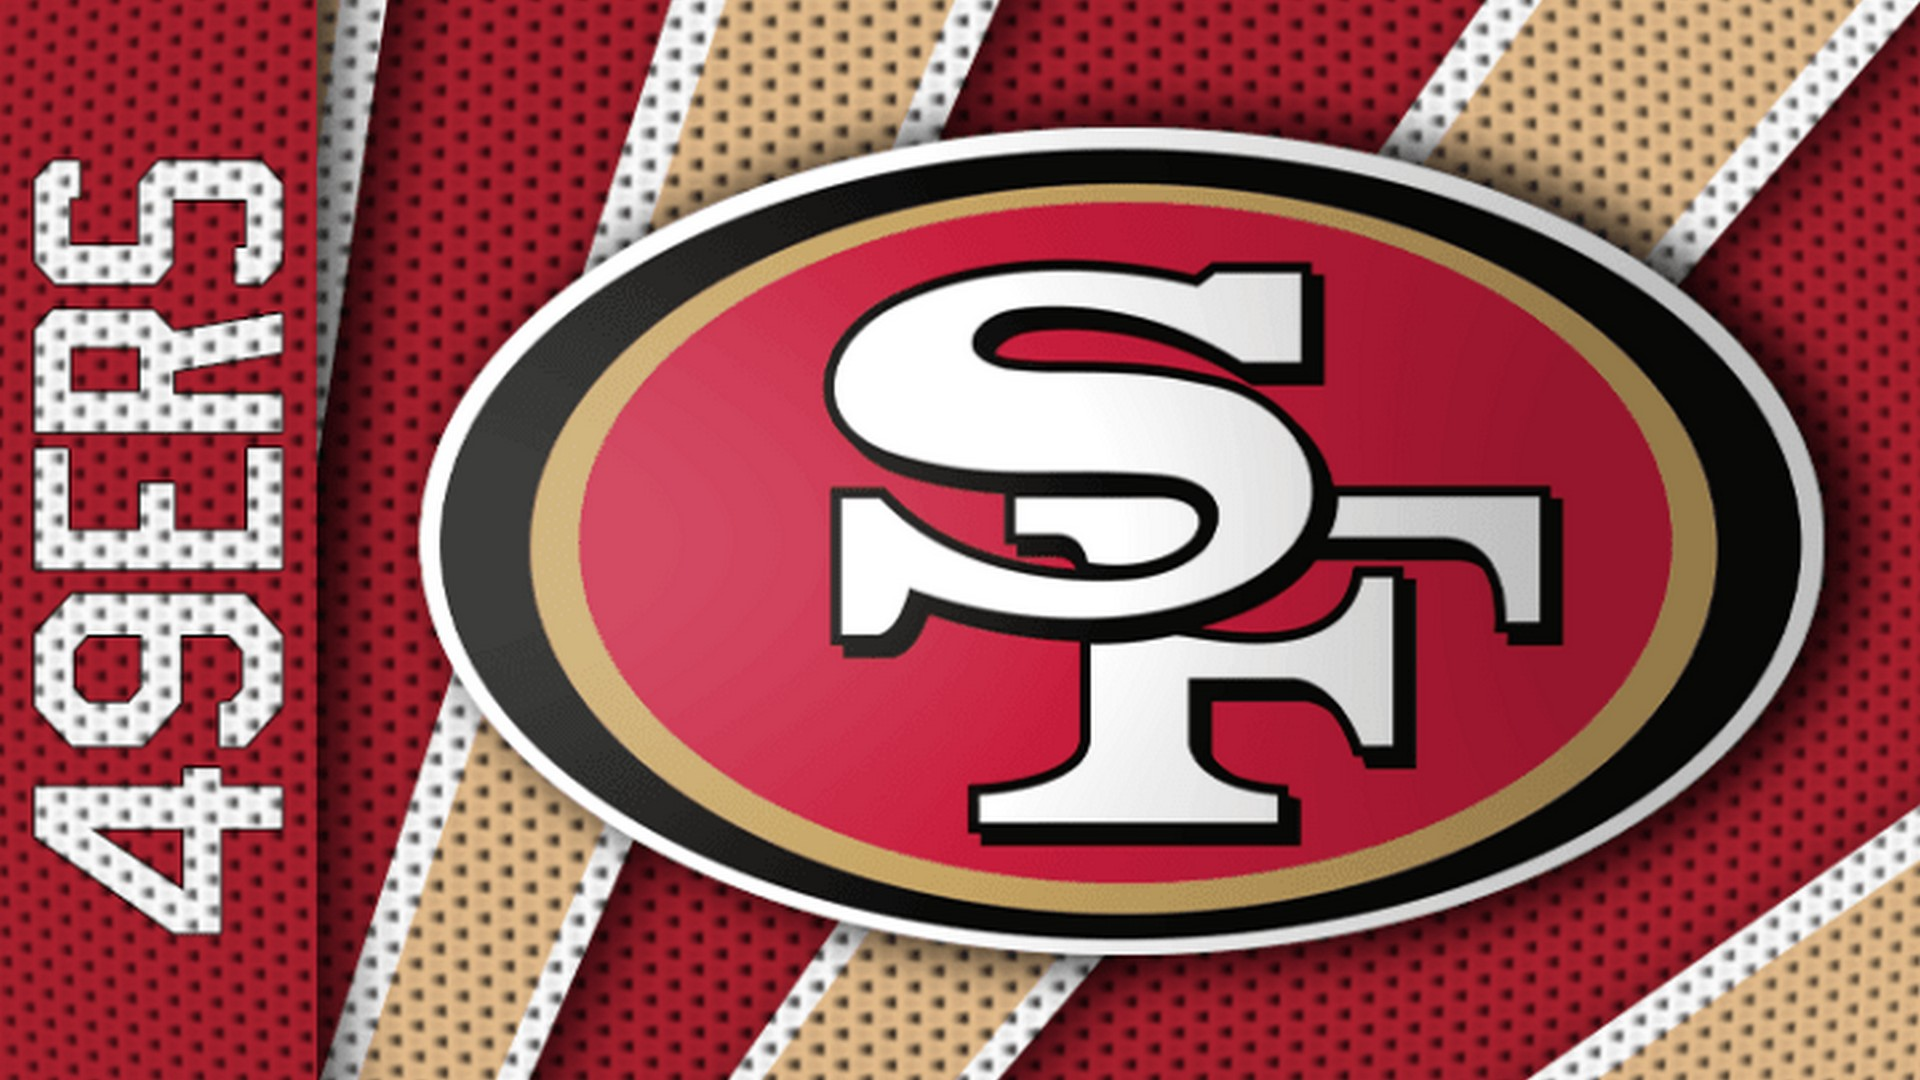 HD San Francisco 49ers Wallpapers 2020 NFL Football Wallpapers 1920x1080